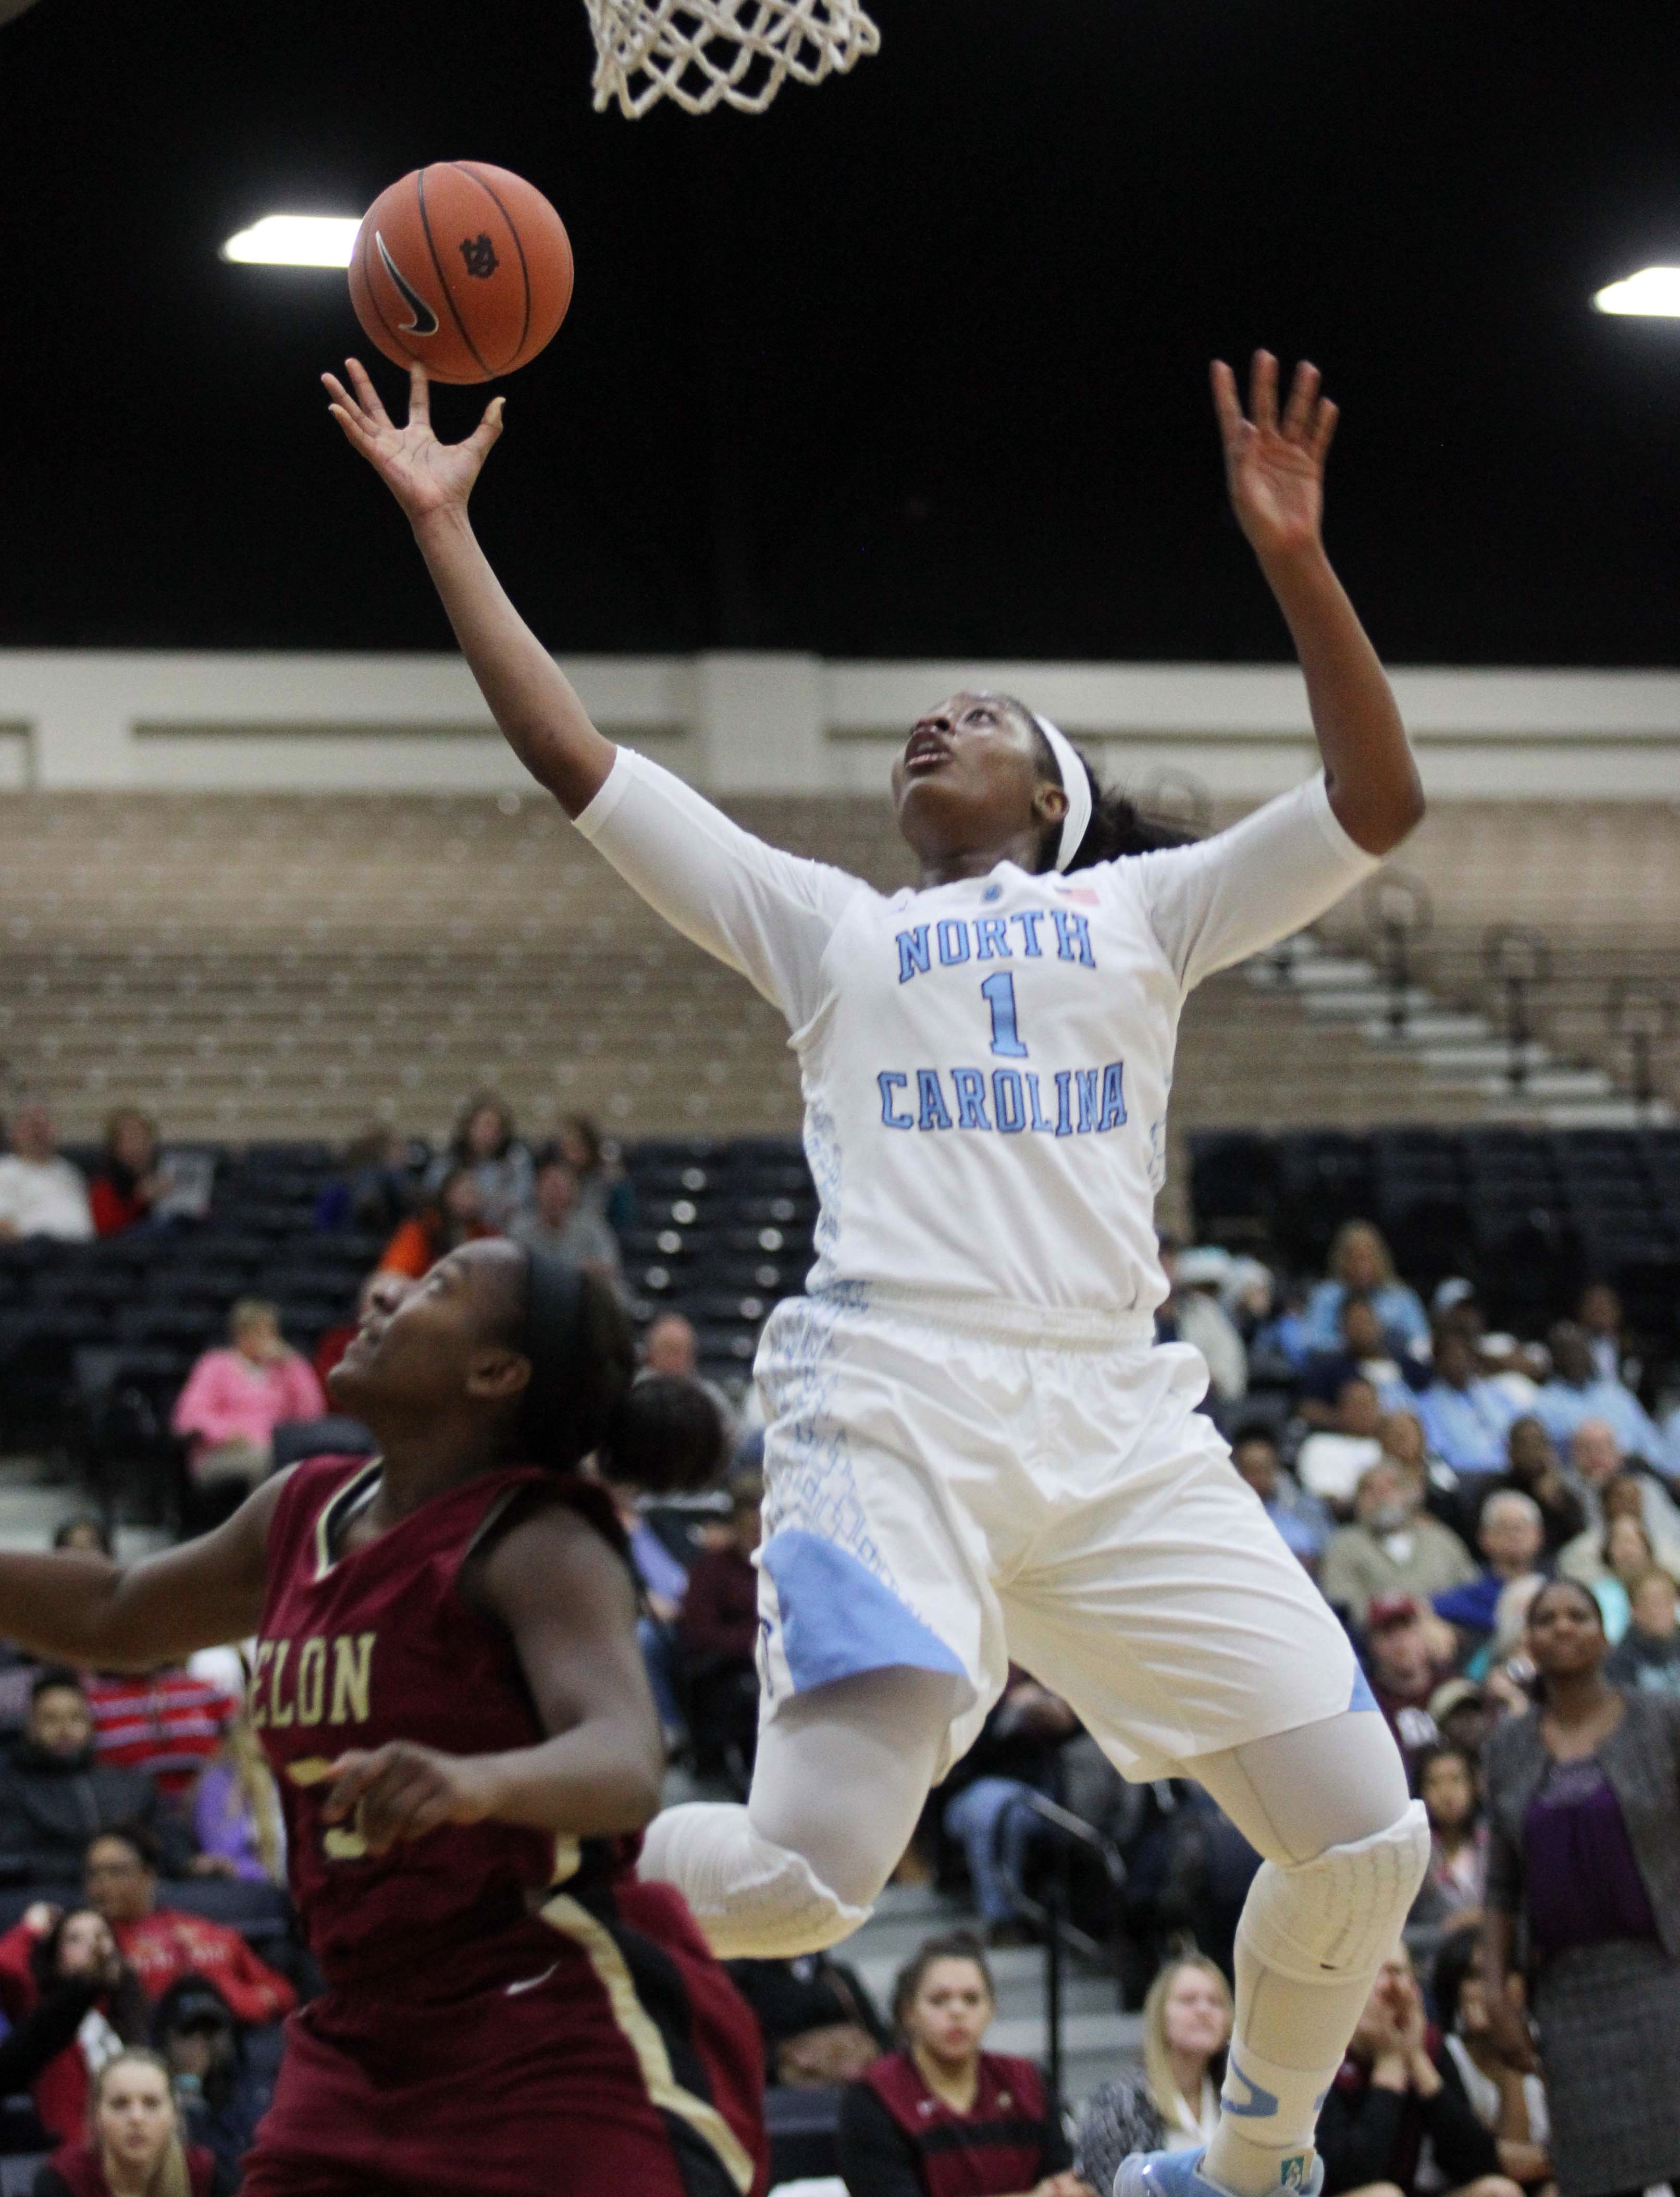 North Carolina Tar Heels Stephanie Mavunga (1) goes up for a rebound over Elon Phoenix's Shay Burnett (5) in the first half of an NCAA women's college basketball at the Carolinas Classic at the Myrtle Beach Convention Center in Myrtle Beach,  S.C. on Sund